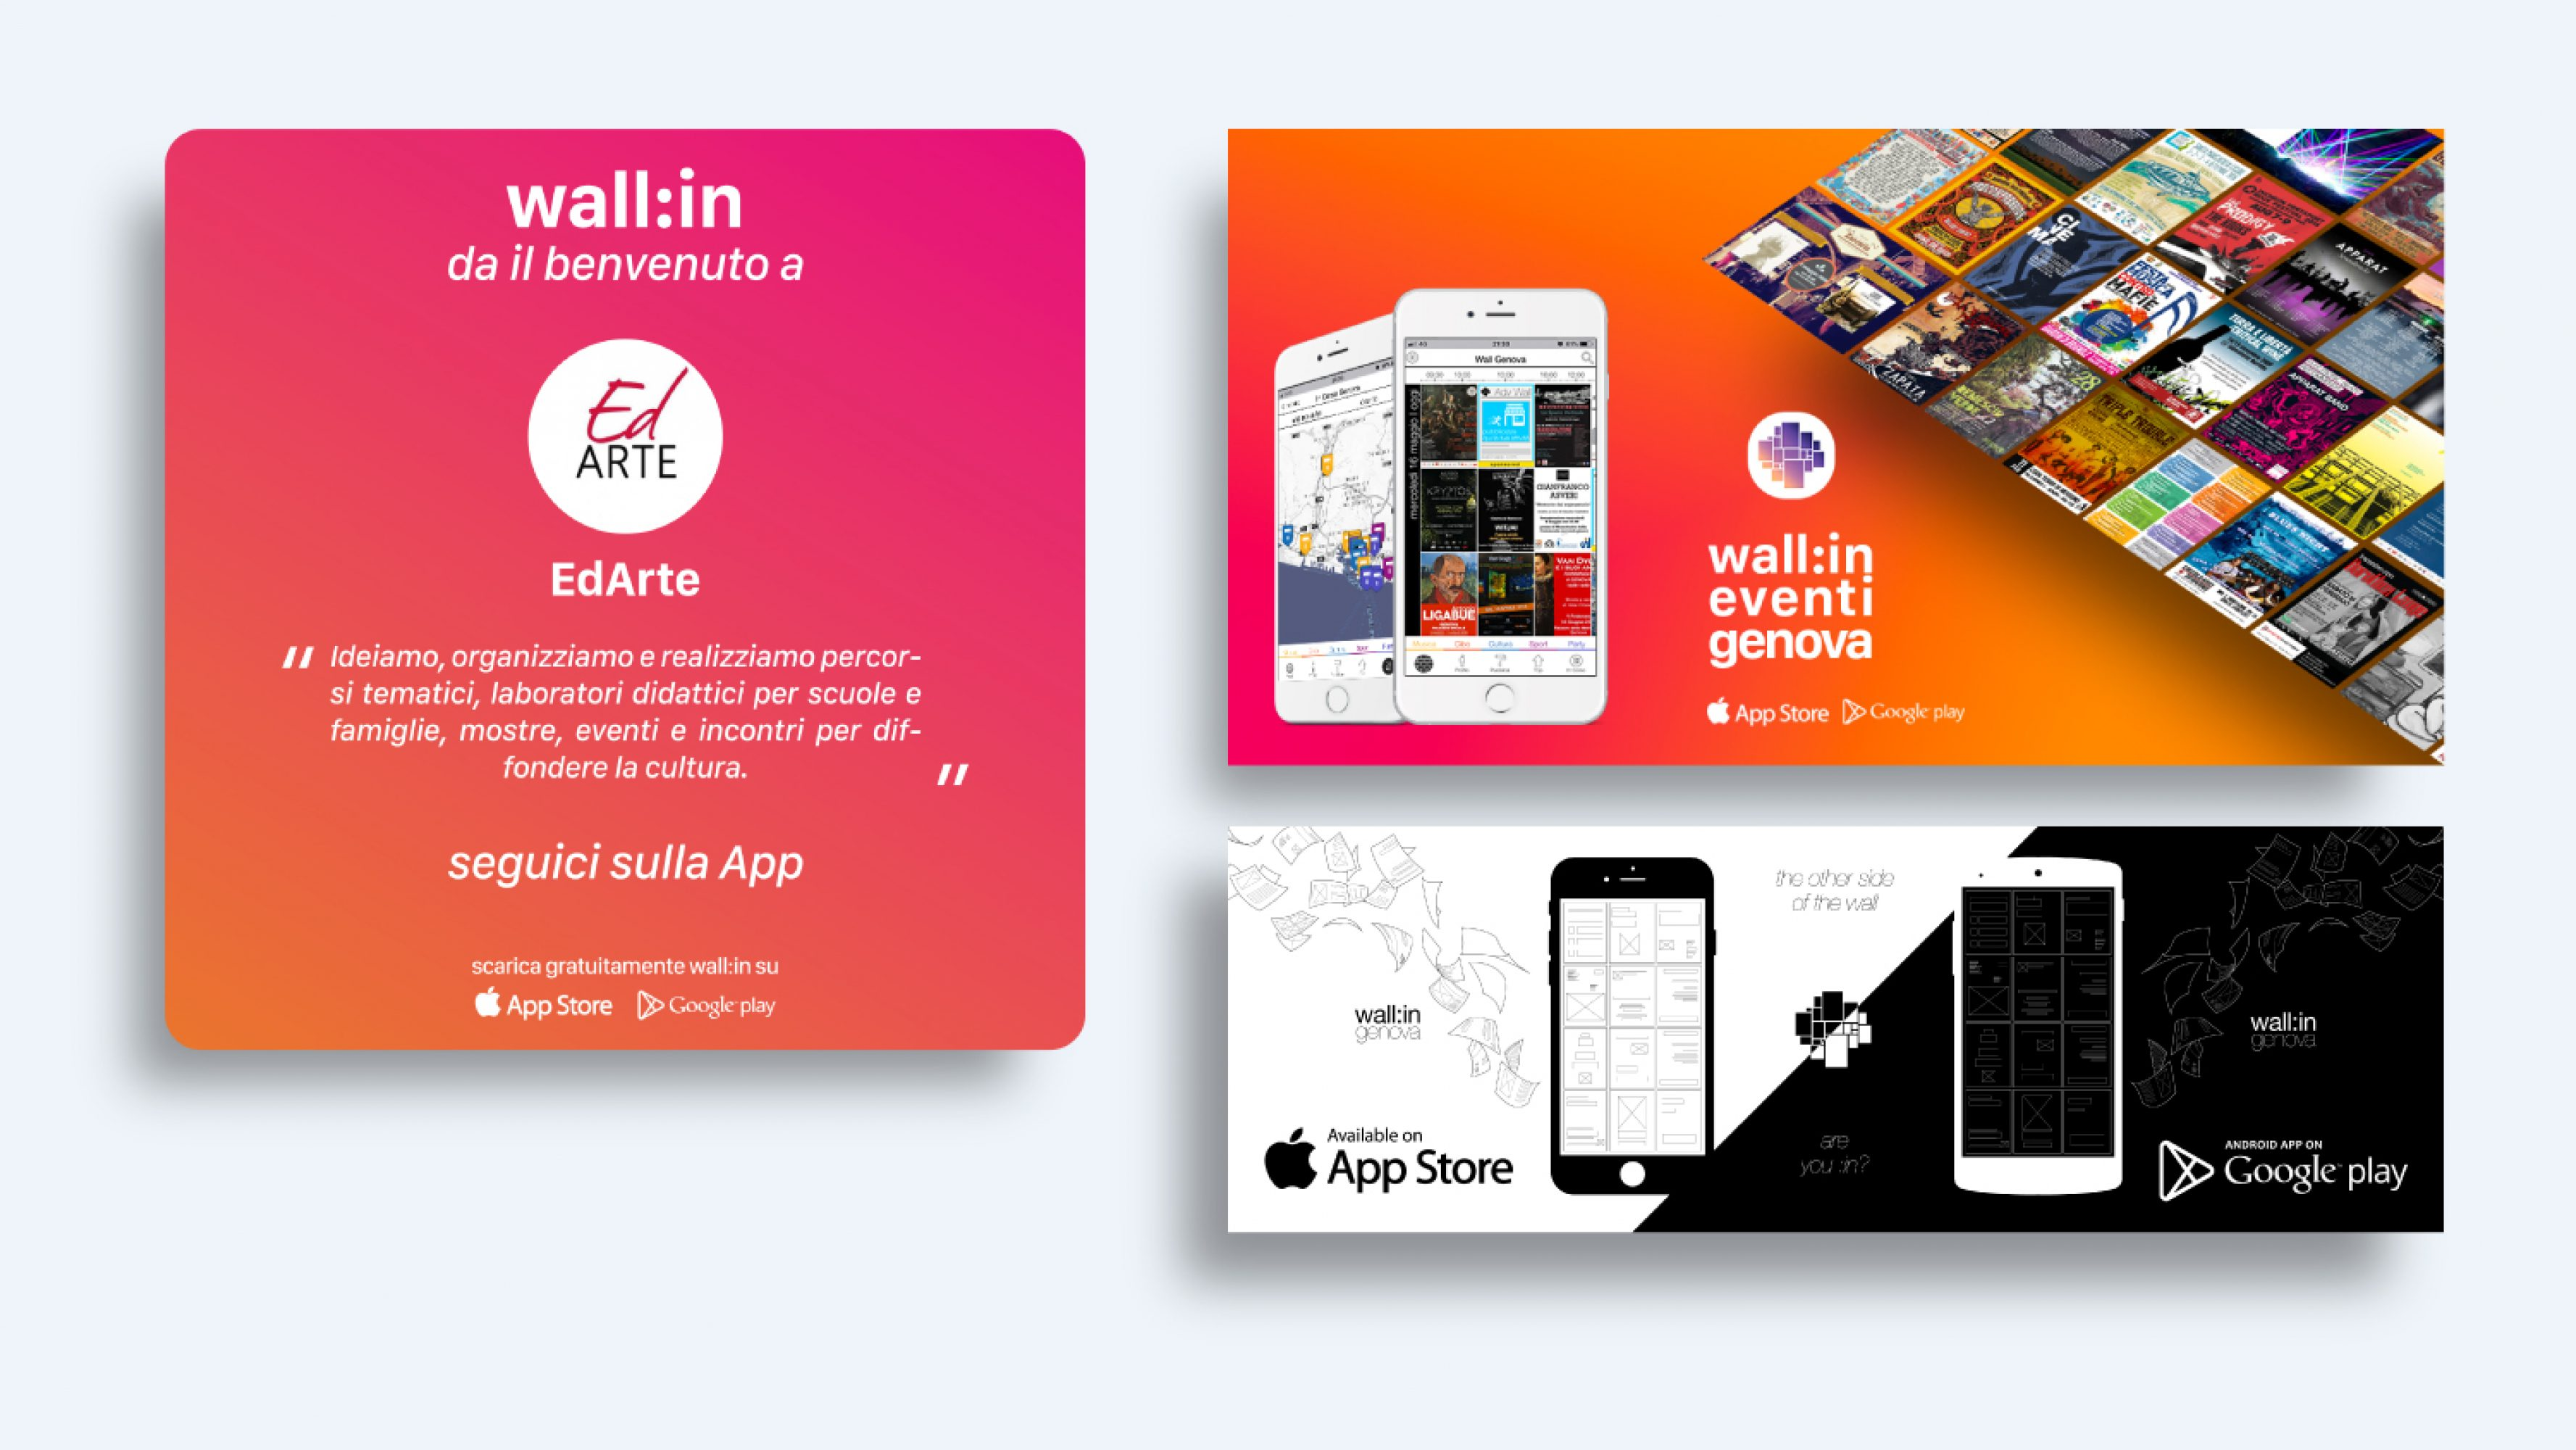 wallin-Social-Management-wallinapp-3